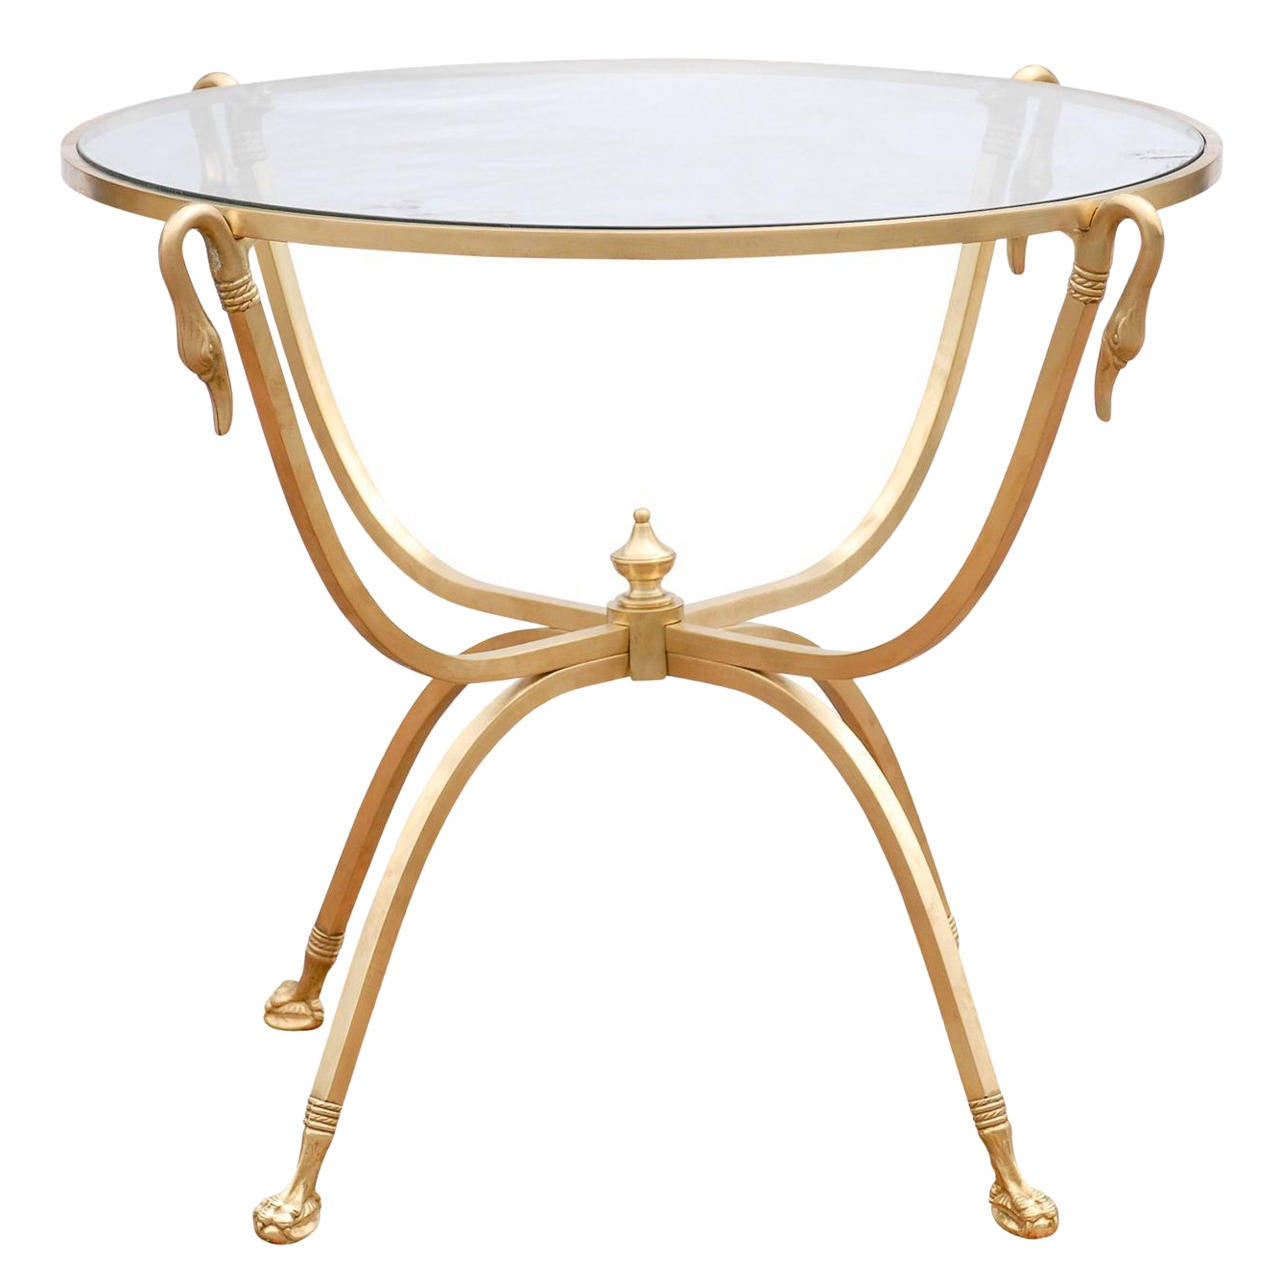 Italian Round Brass Table with Glass Top and Swan Motifs, circa 1960